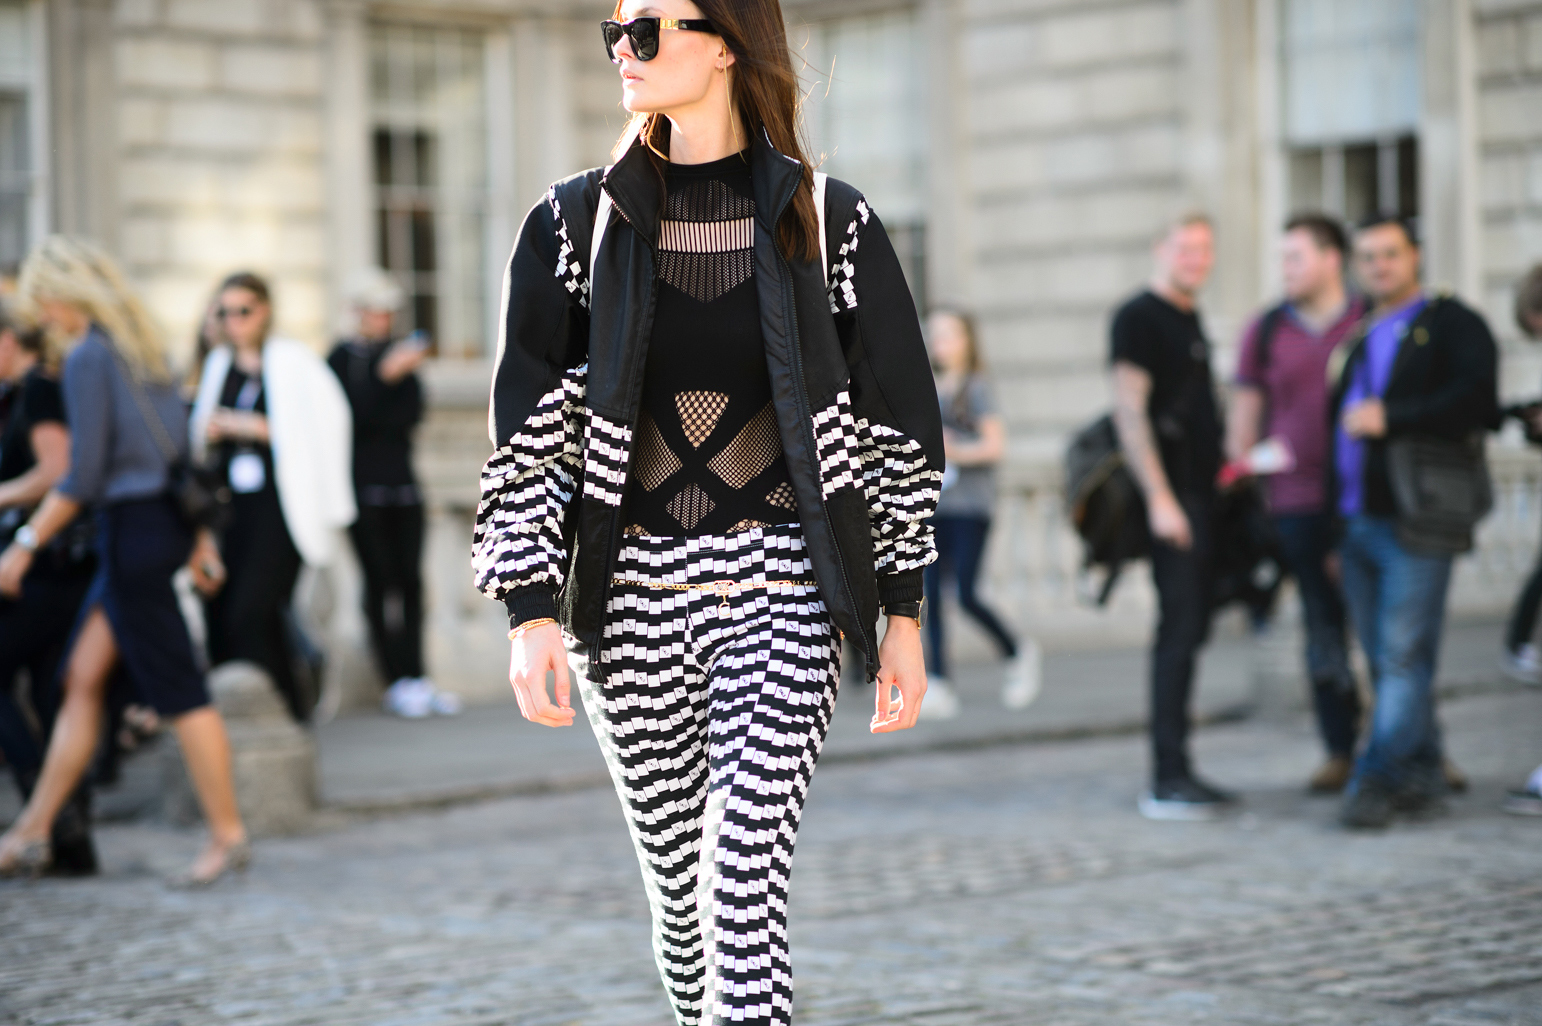 london-spring-2015-street-style-day-1-8-w-mag5